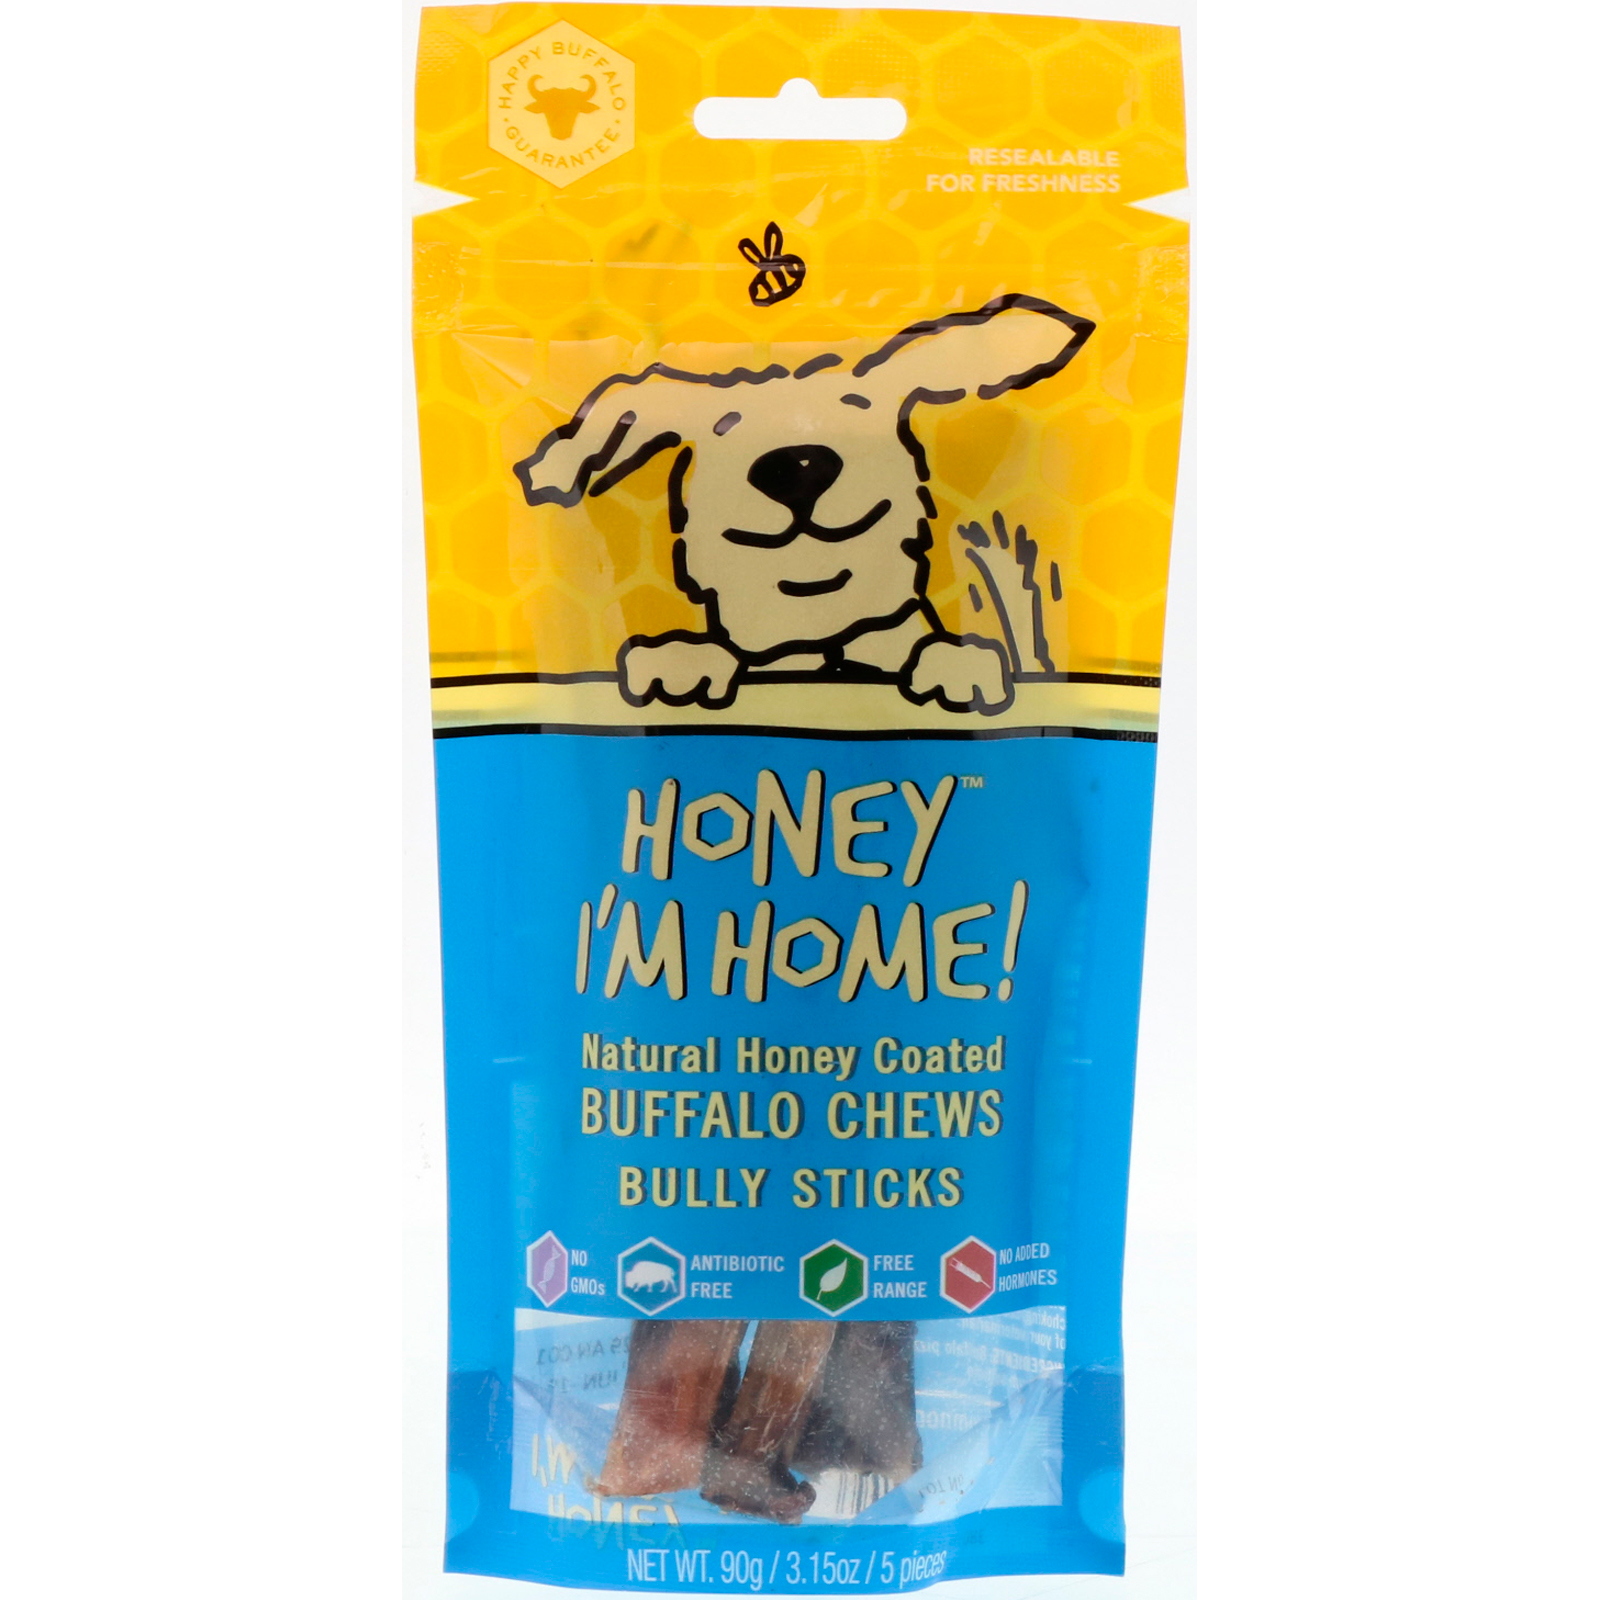 Crunchy Ears Healthy Long Lasting Dog Chews Honey Im Home Natural Honey Coated Buffalo Chews